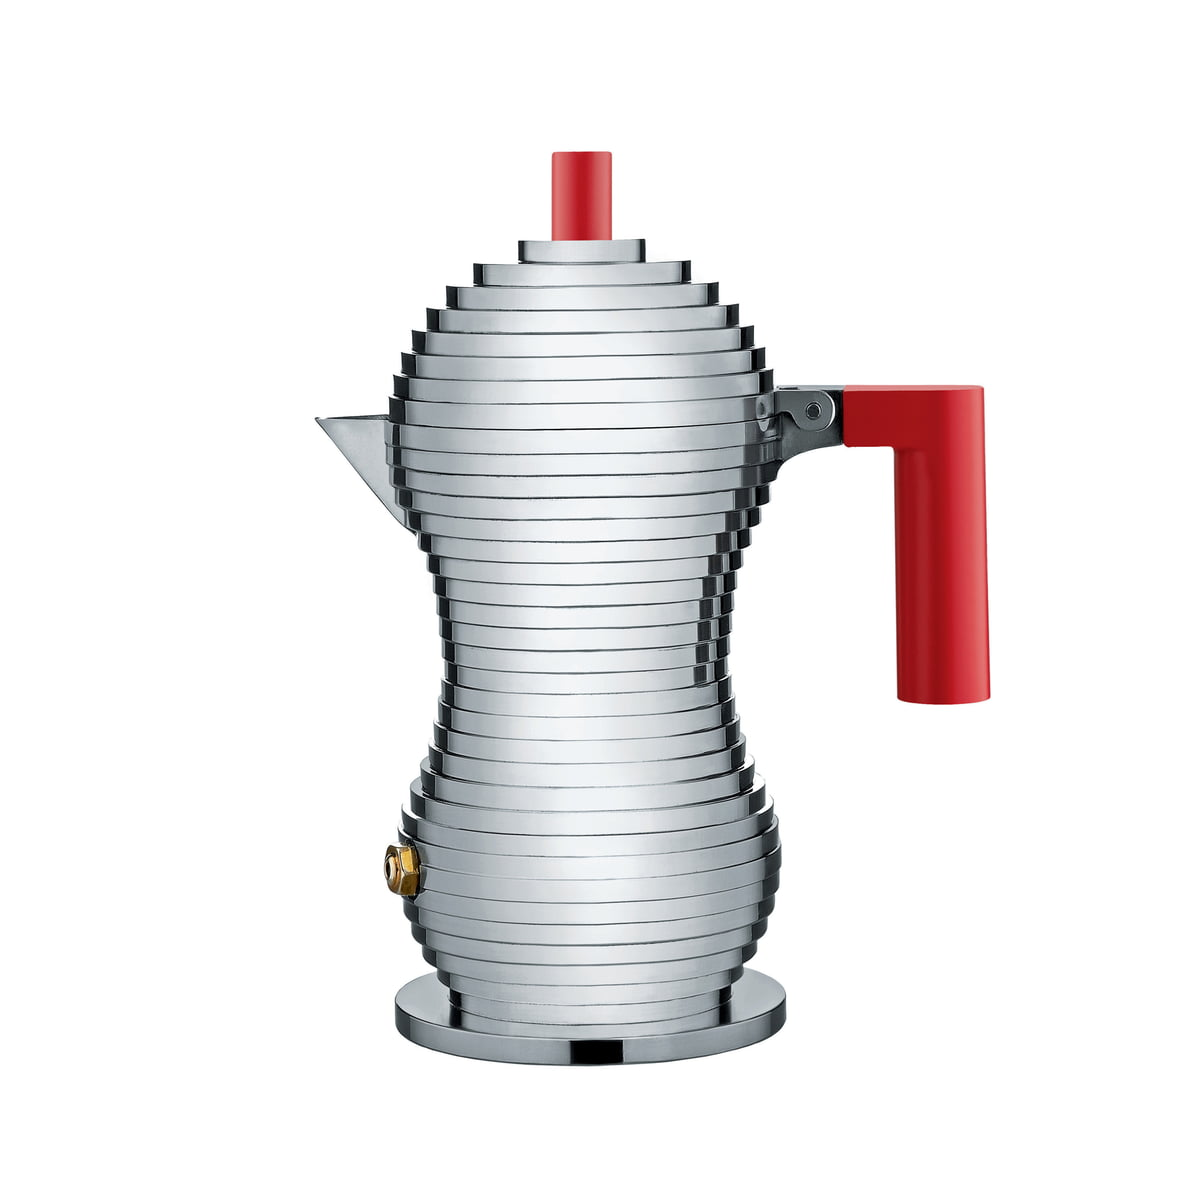 Pulcina Espresso Coffee Maker 15 Cl Induction By Alessi In Red